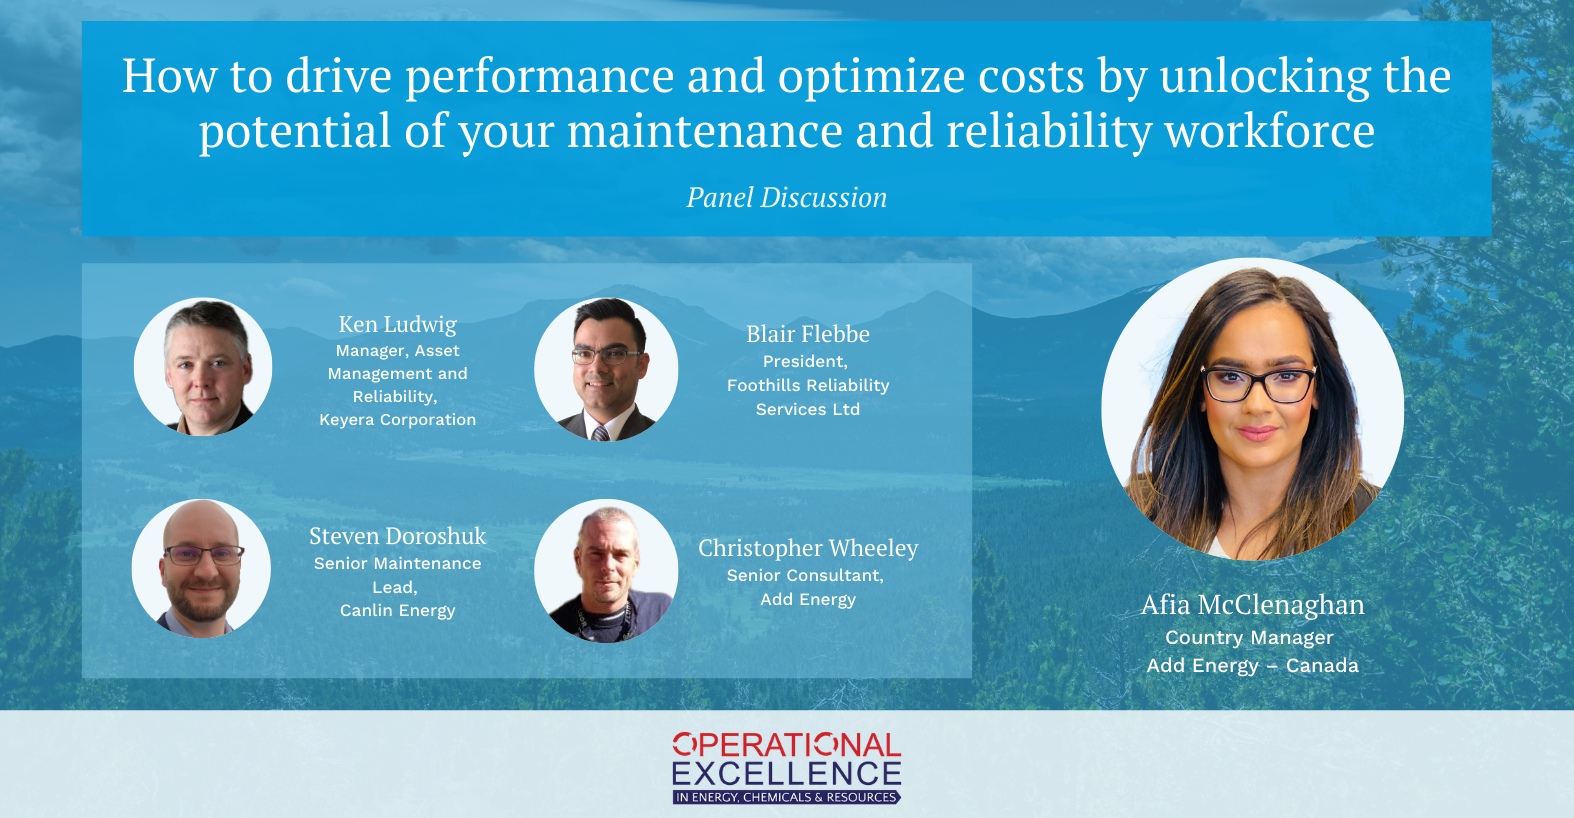 How to drive performance and optimize costs by unlocking the potential of your maintenance and reliability workforce